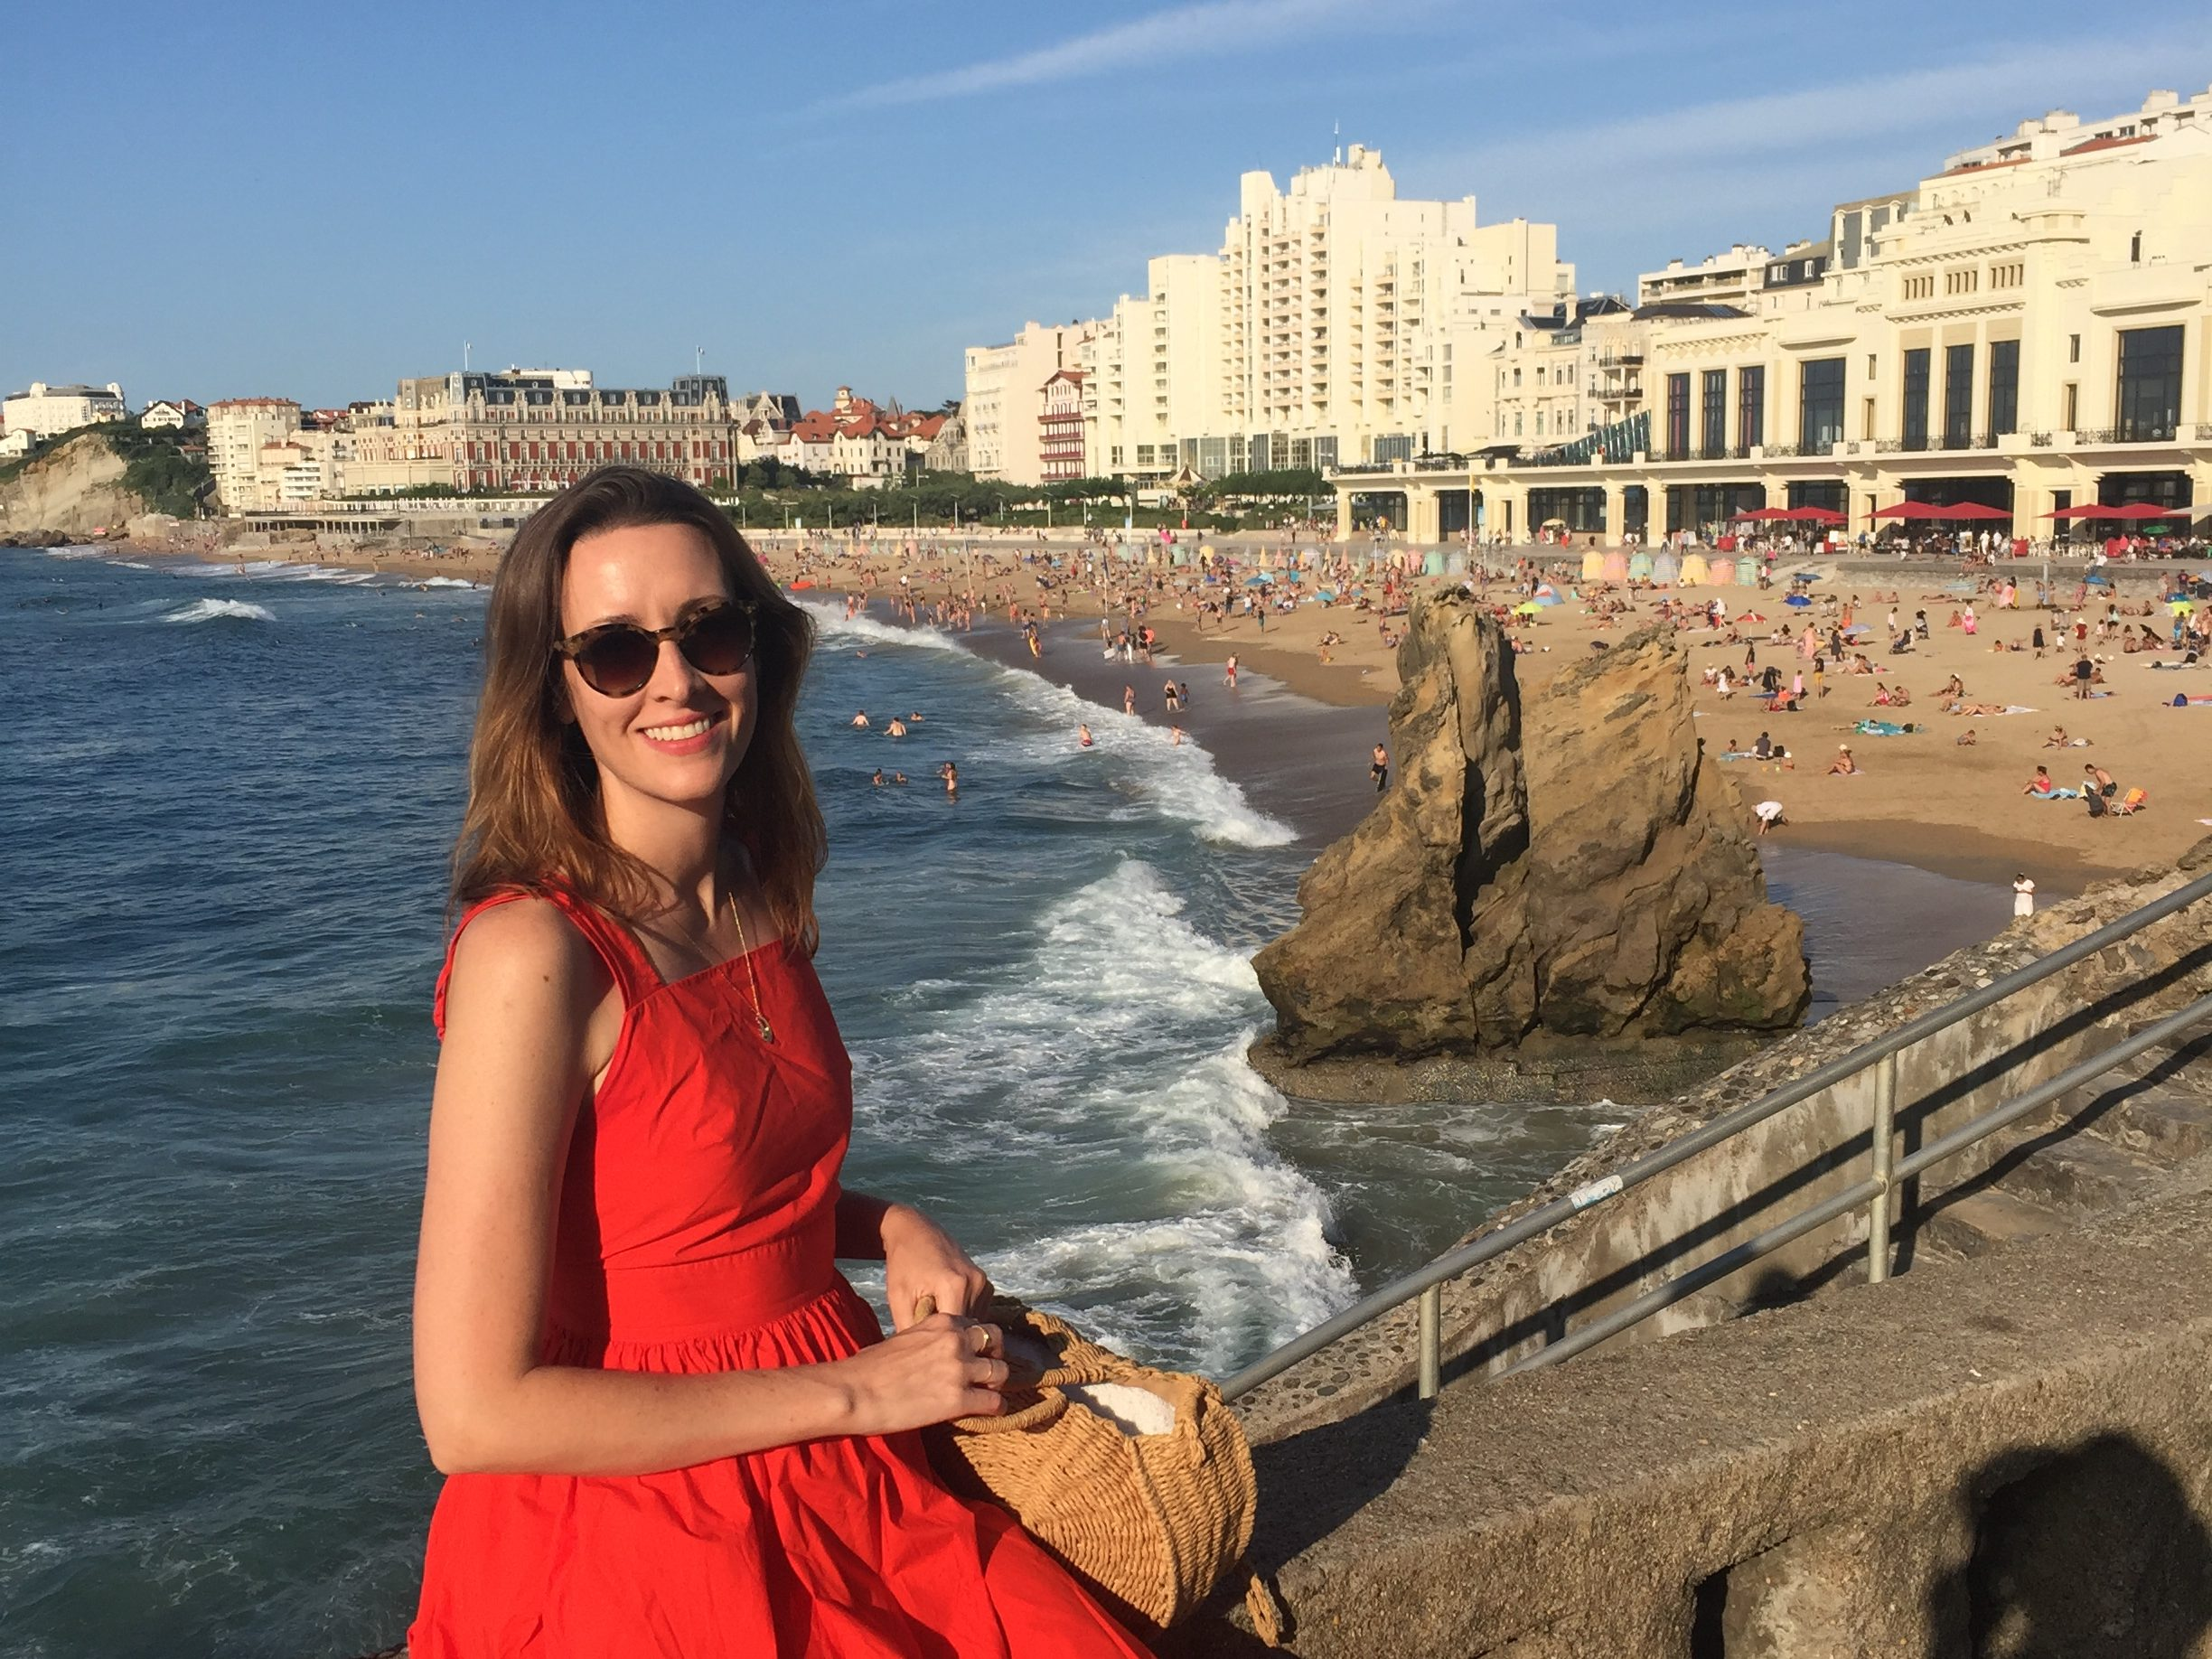 Biarritz Guide: Beaches, Restaurants and Shopping in the 'California of France'